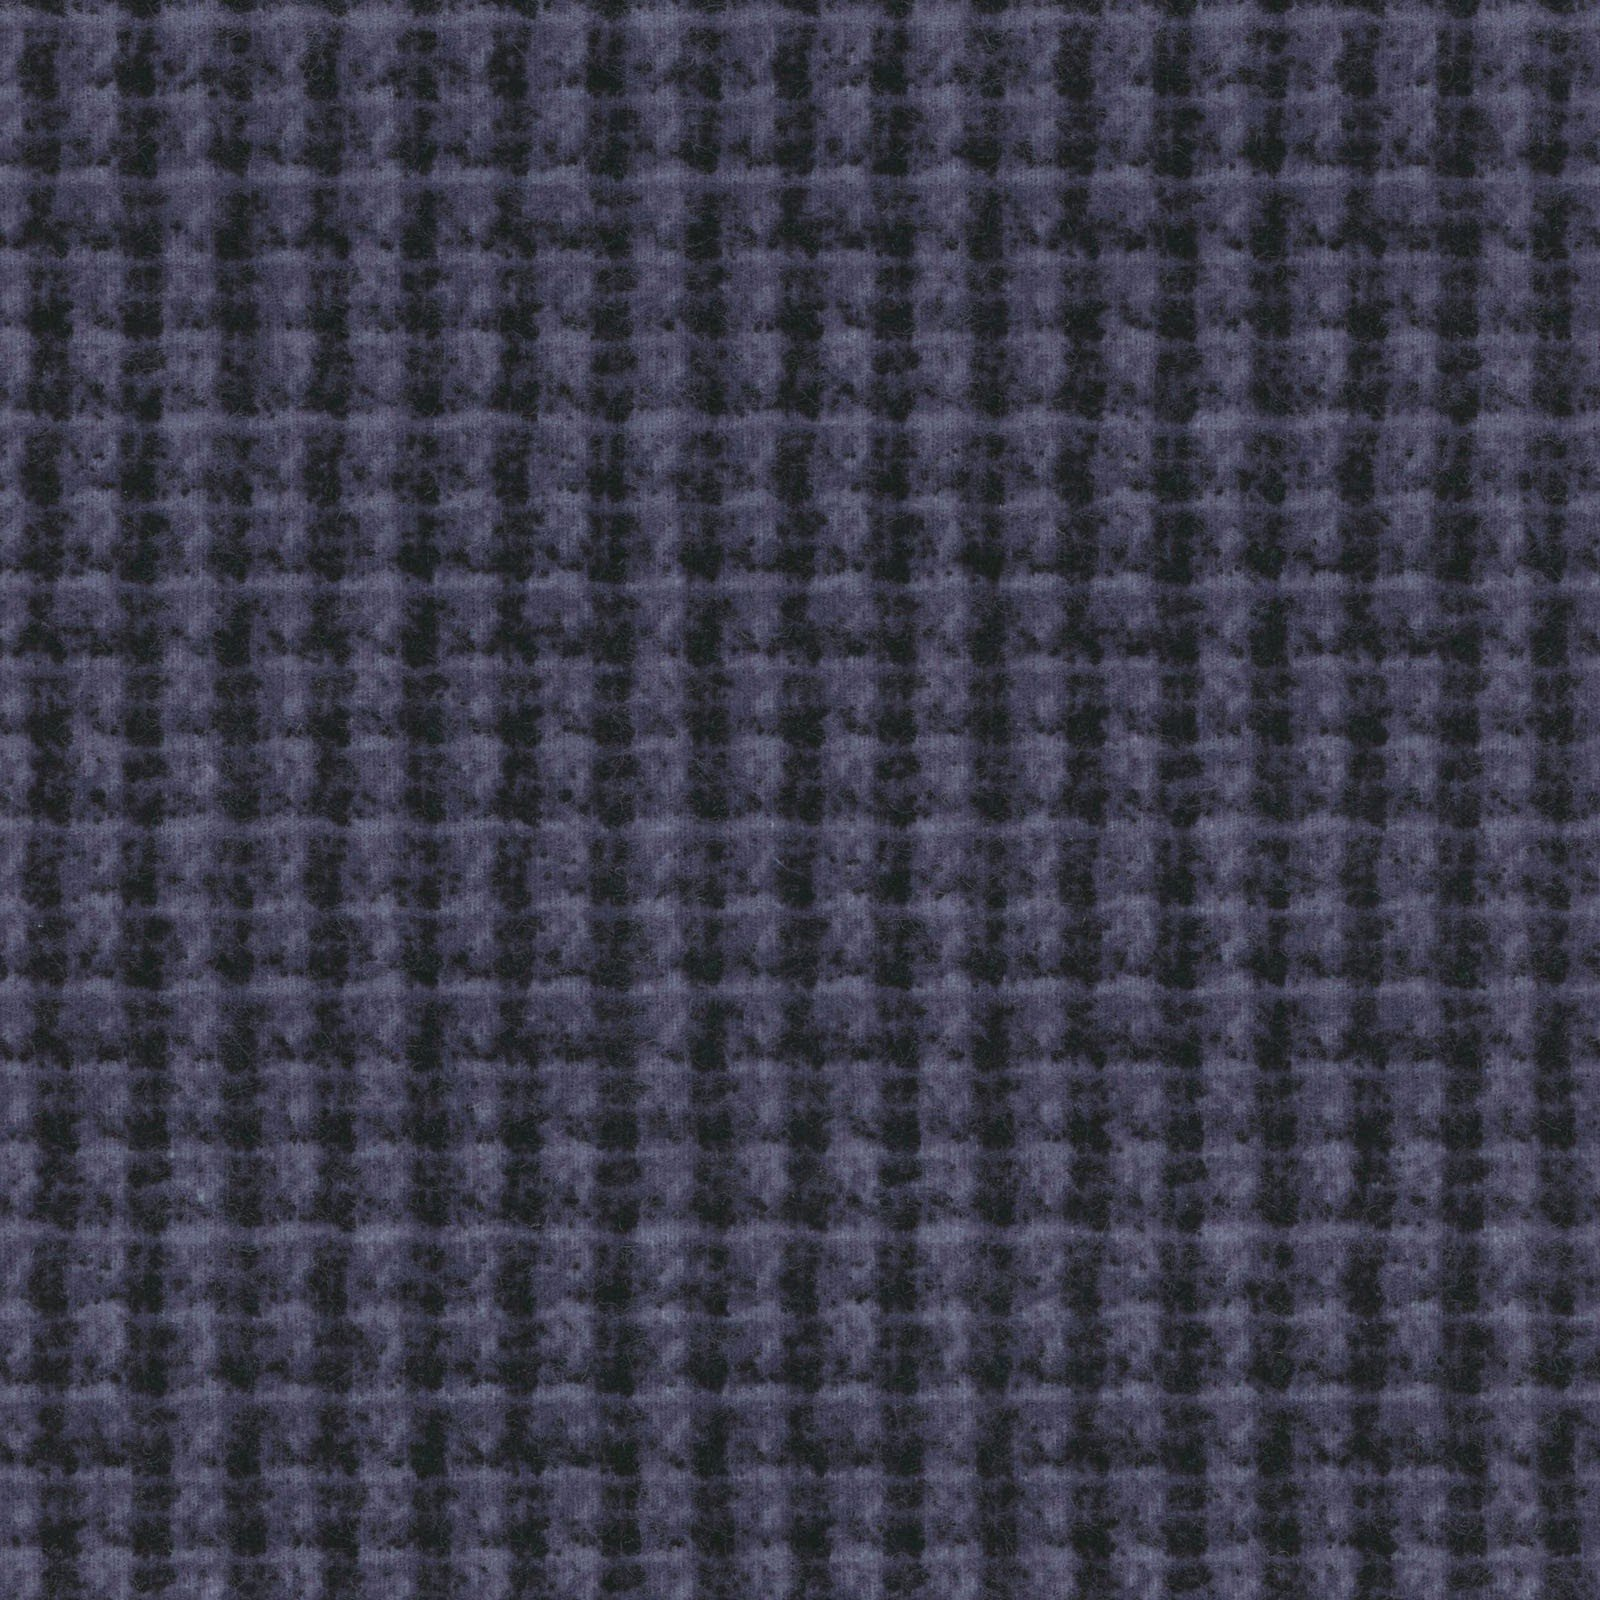 Woolies Flannel Double Weave Violet (MASF18504-VB)